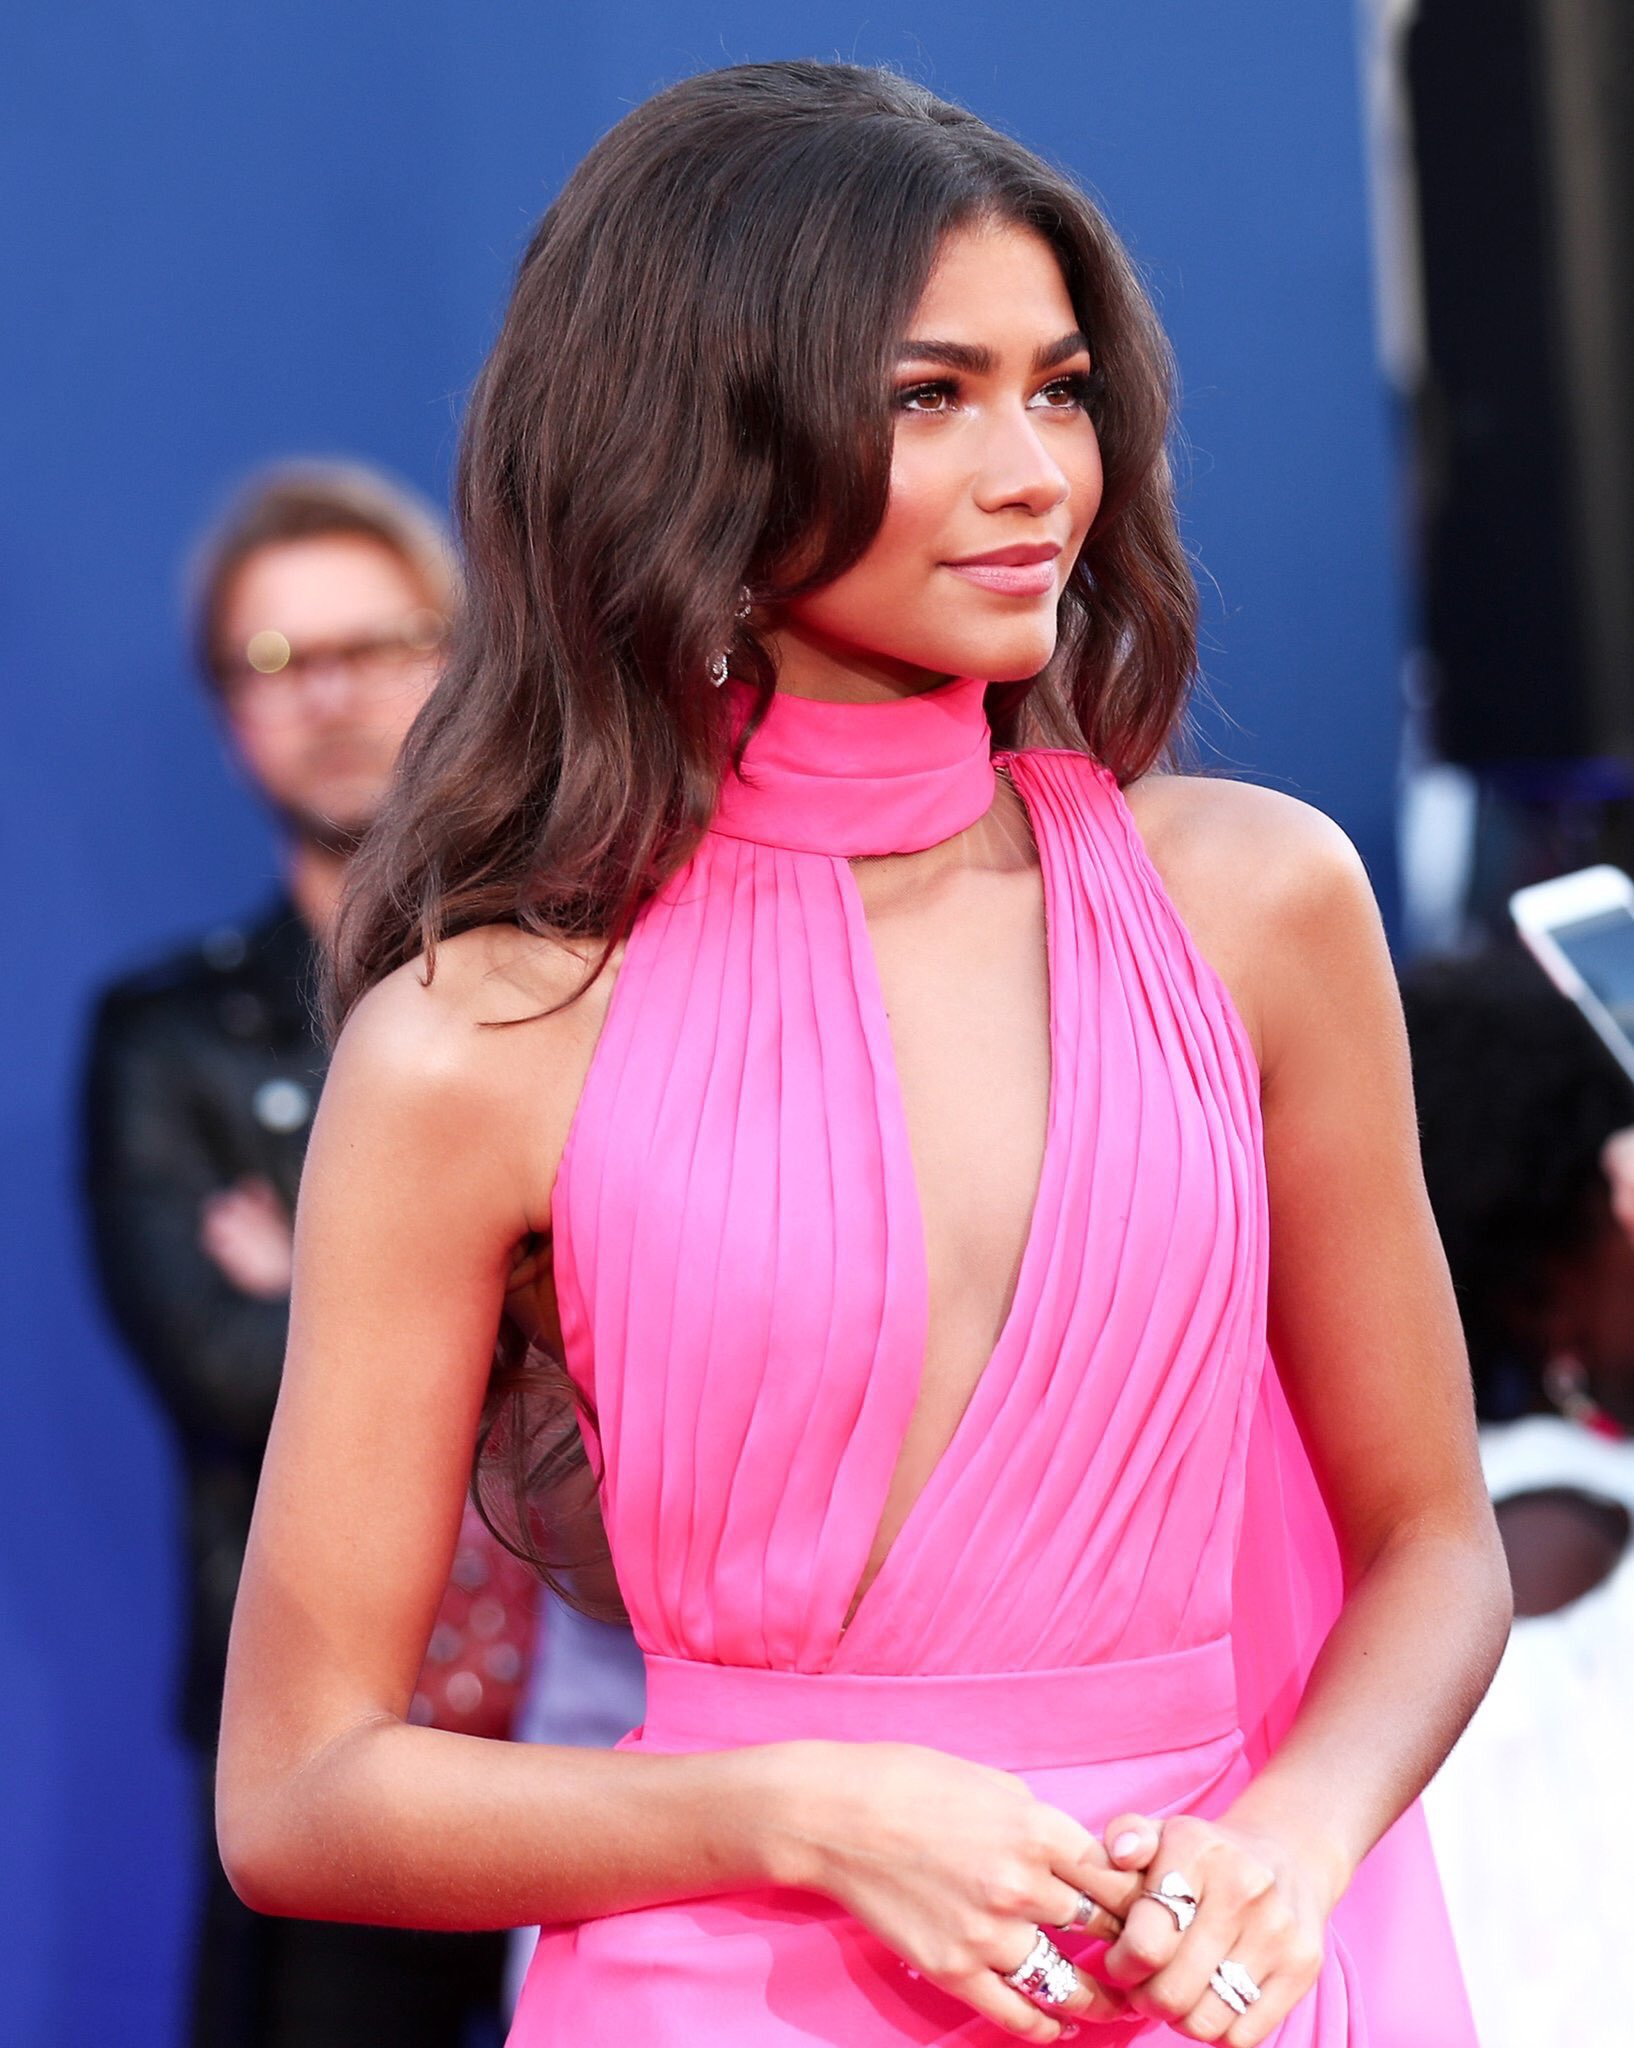 Happy 21st birthday Zendaya!